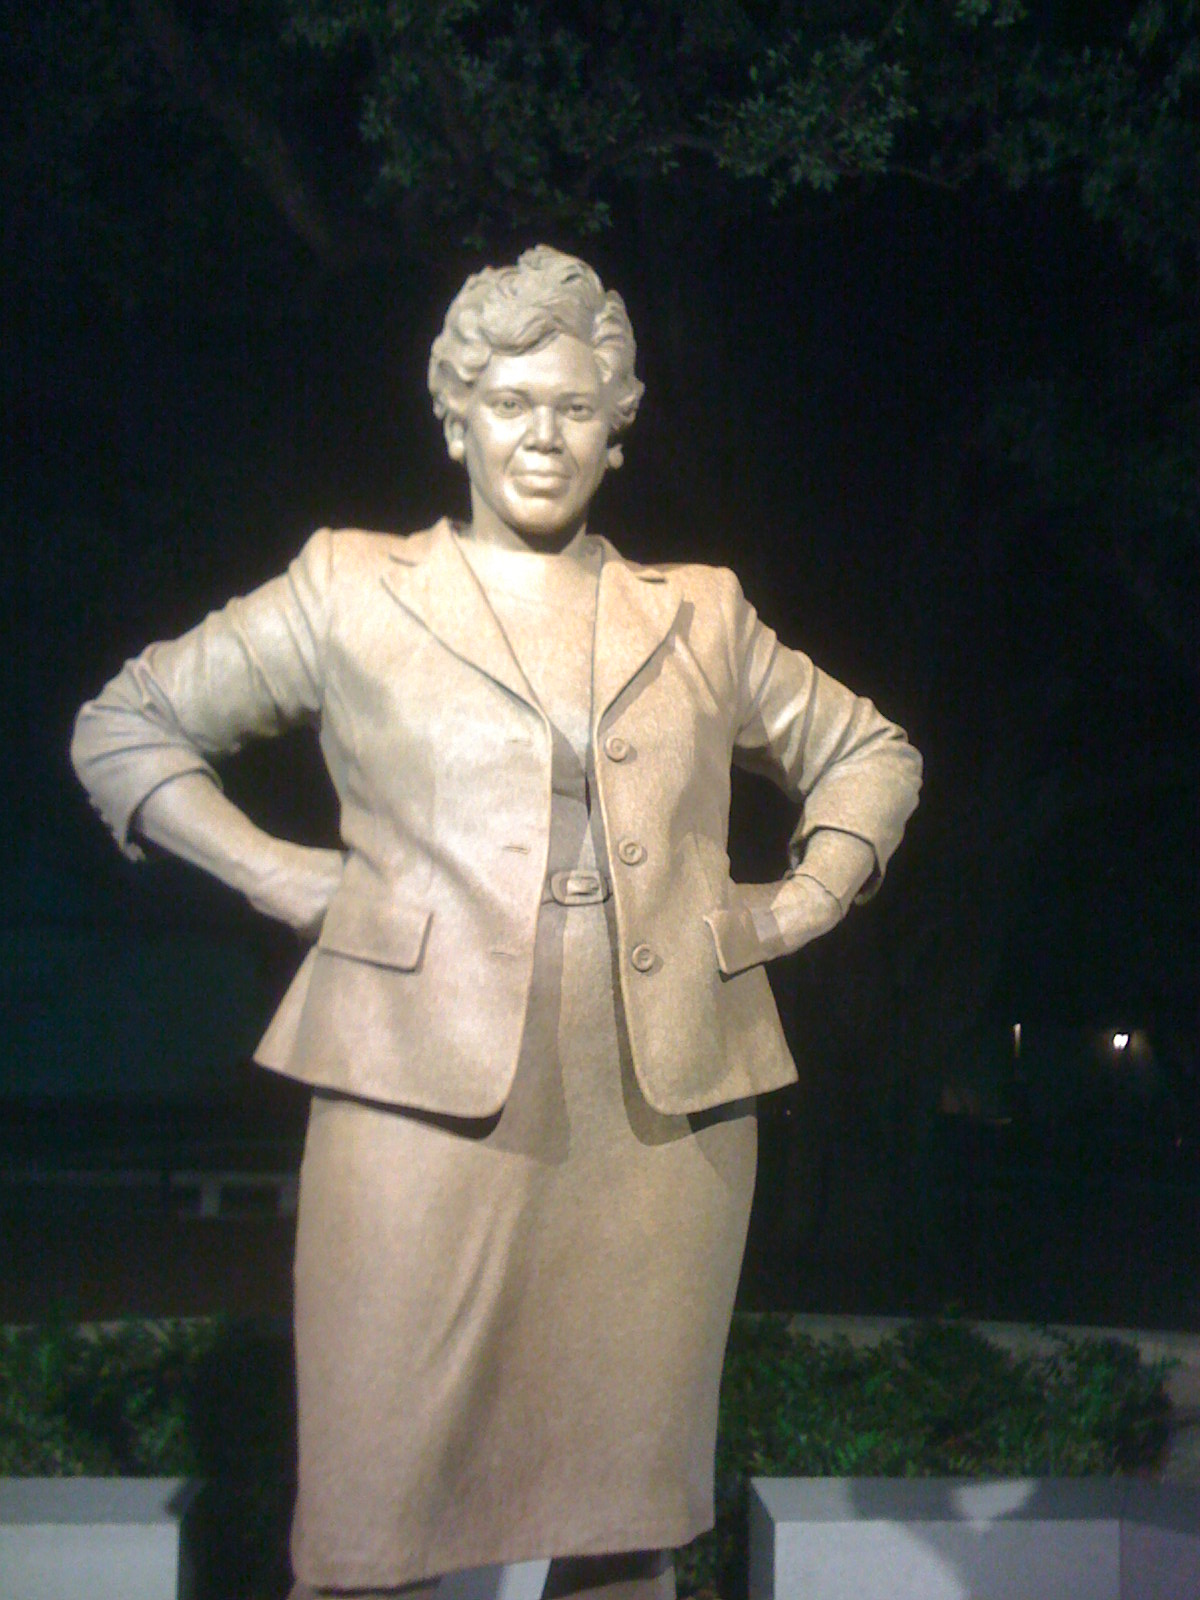 an analysis of mary beth rogers in barbara jordan american hero Browse all literature study guides on enotescom analysis, and criticisms for barbara jordan: american hero by mary beth rogers.